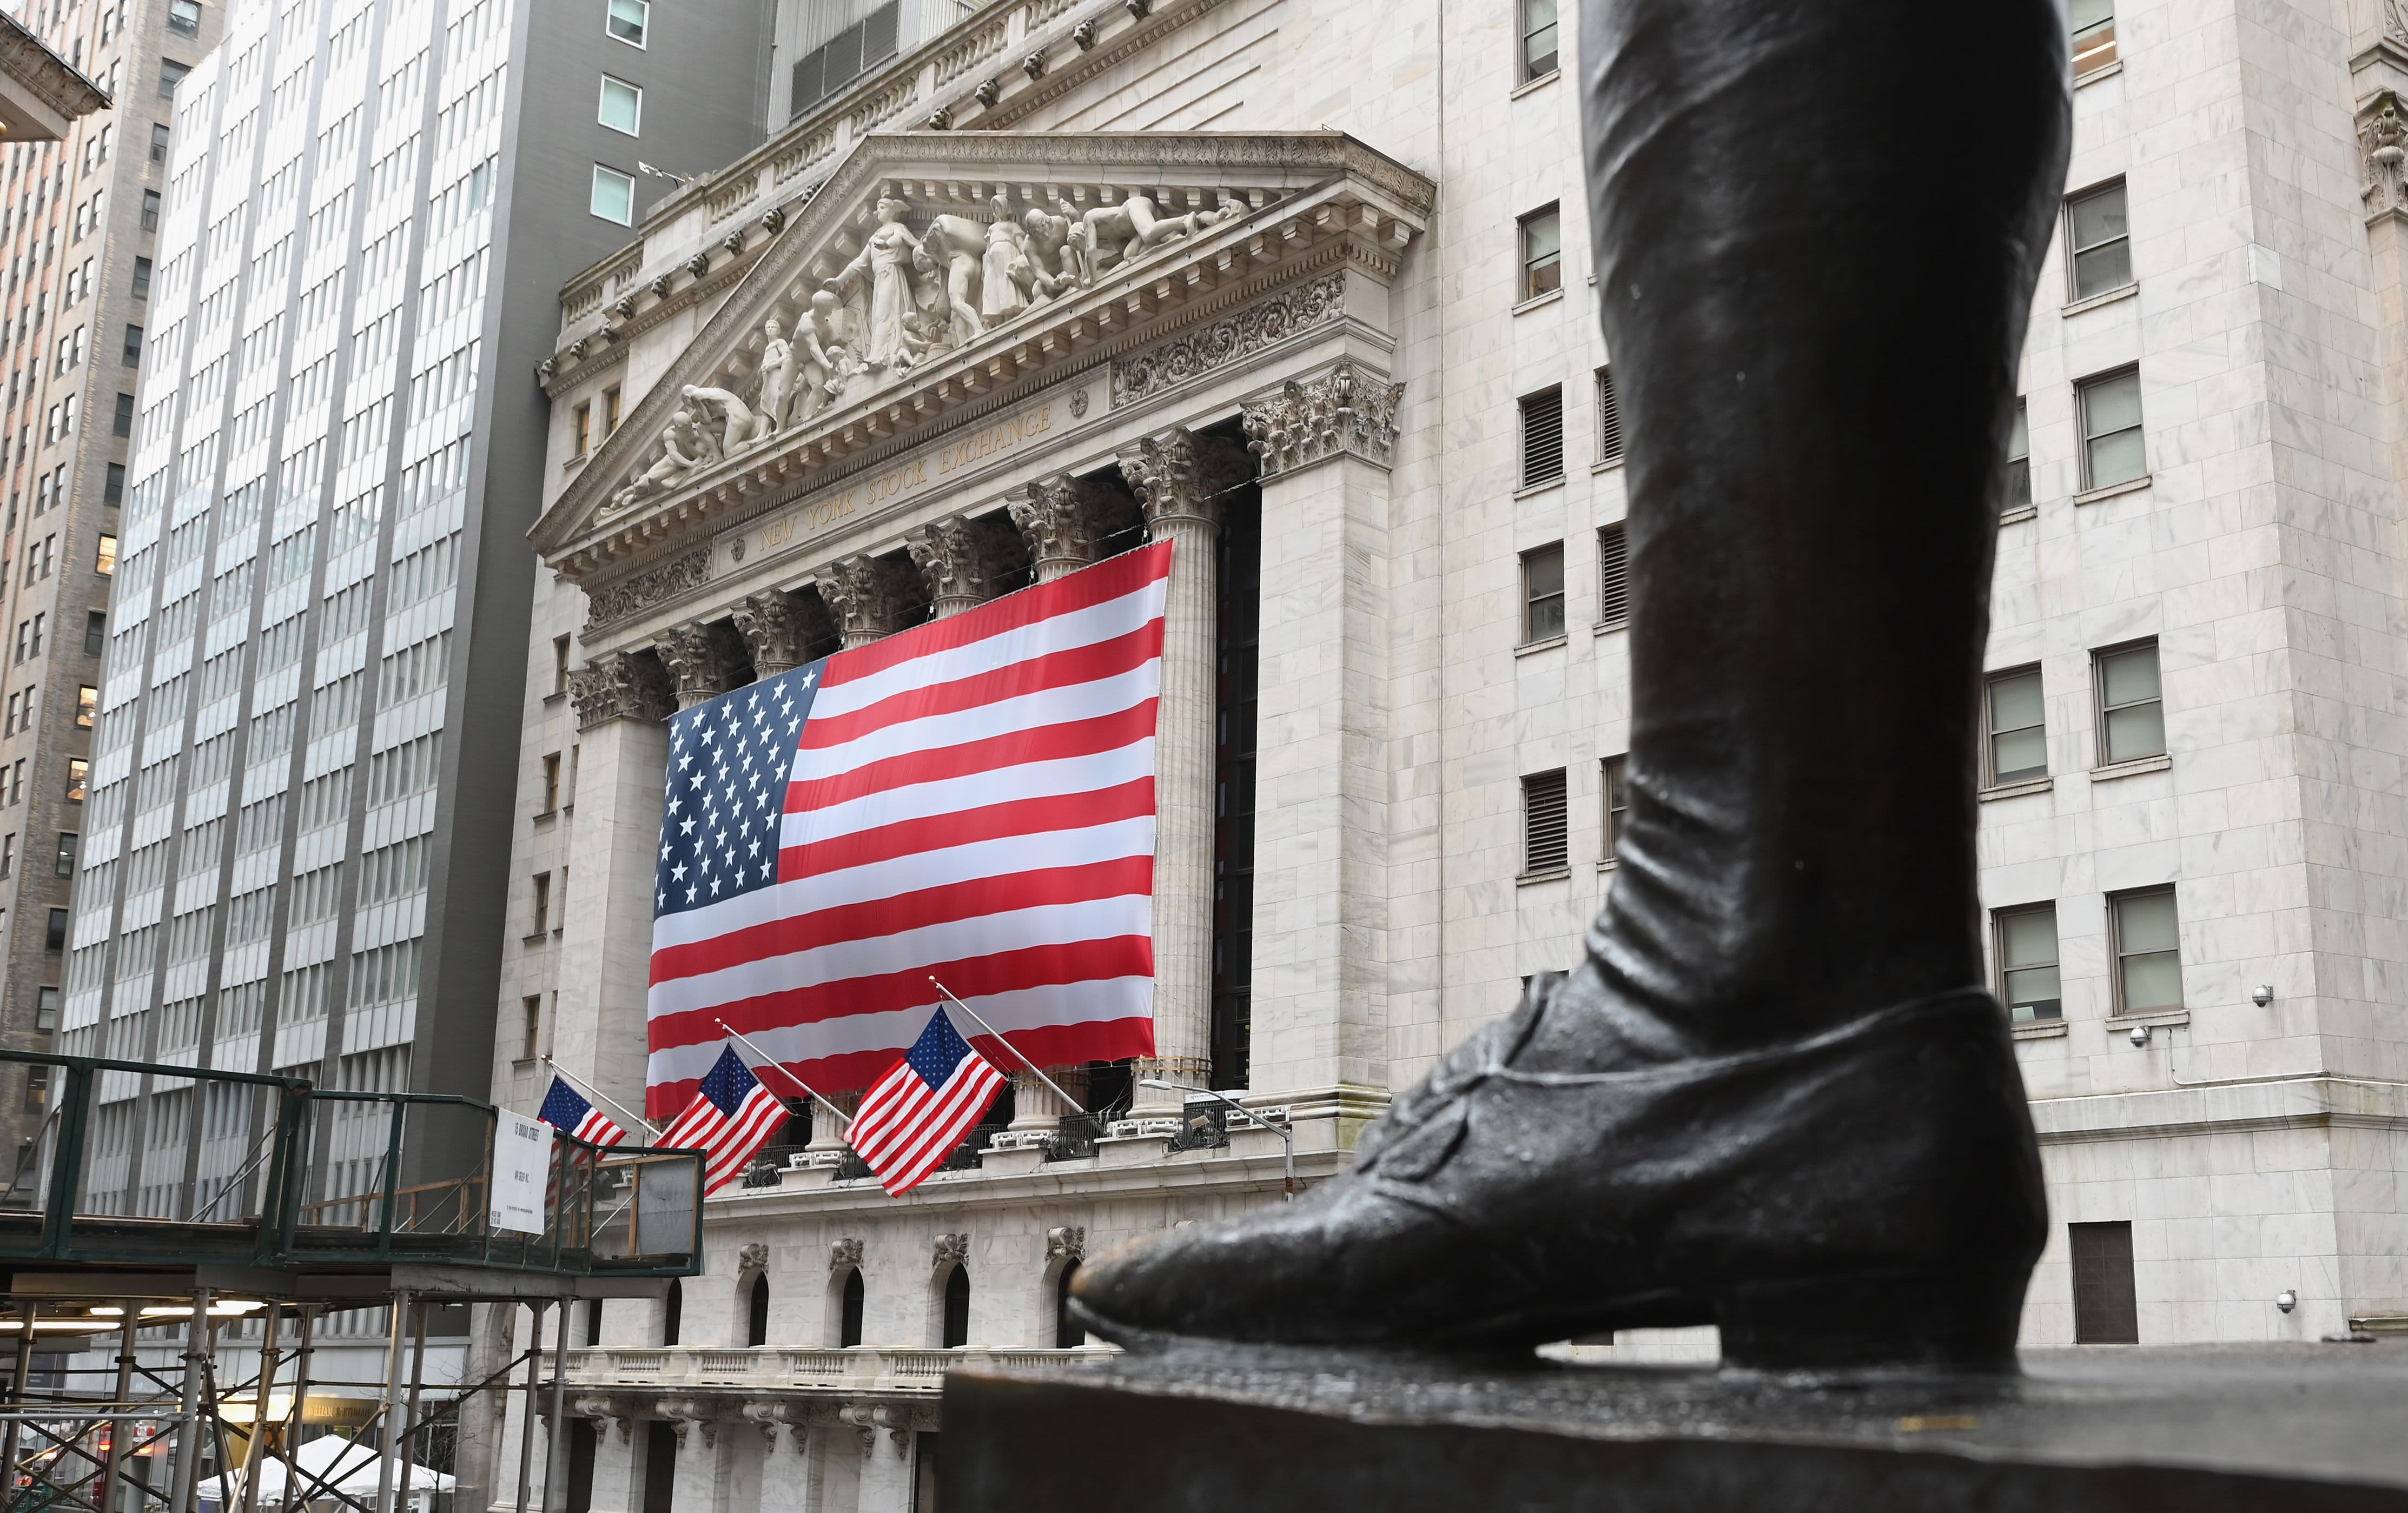 Stock market live updates: Futures slide, Trump China news conference looms